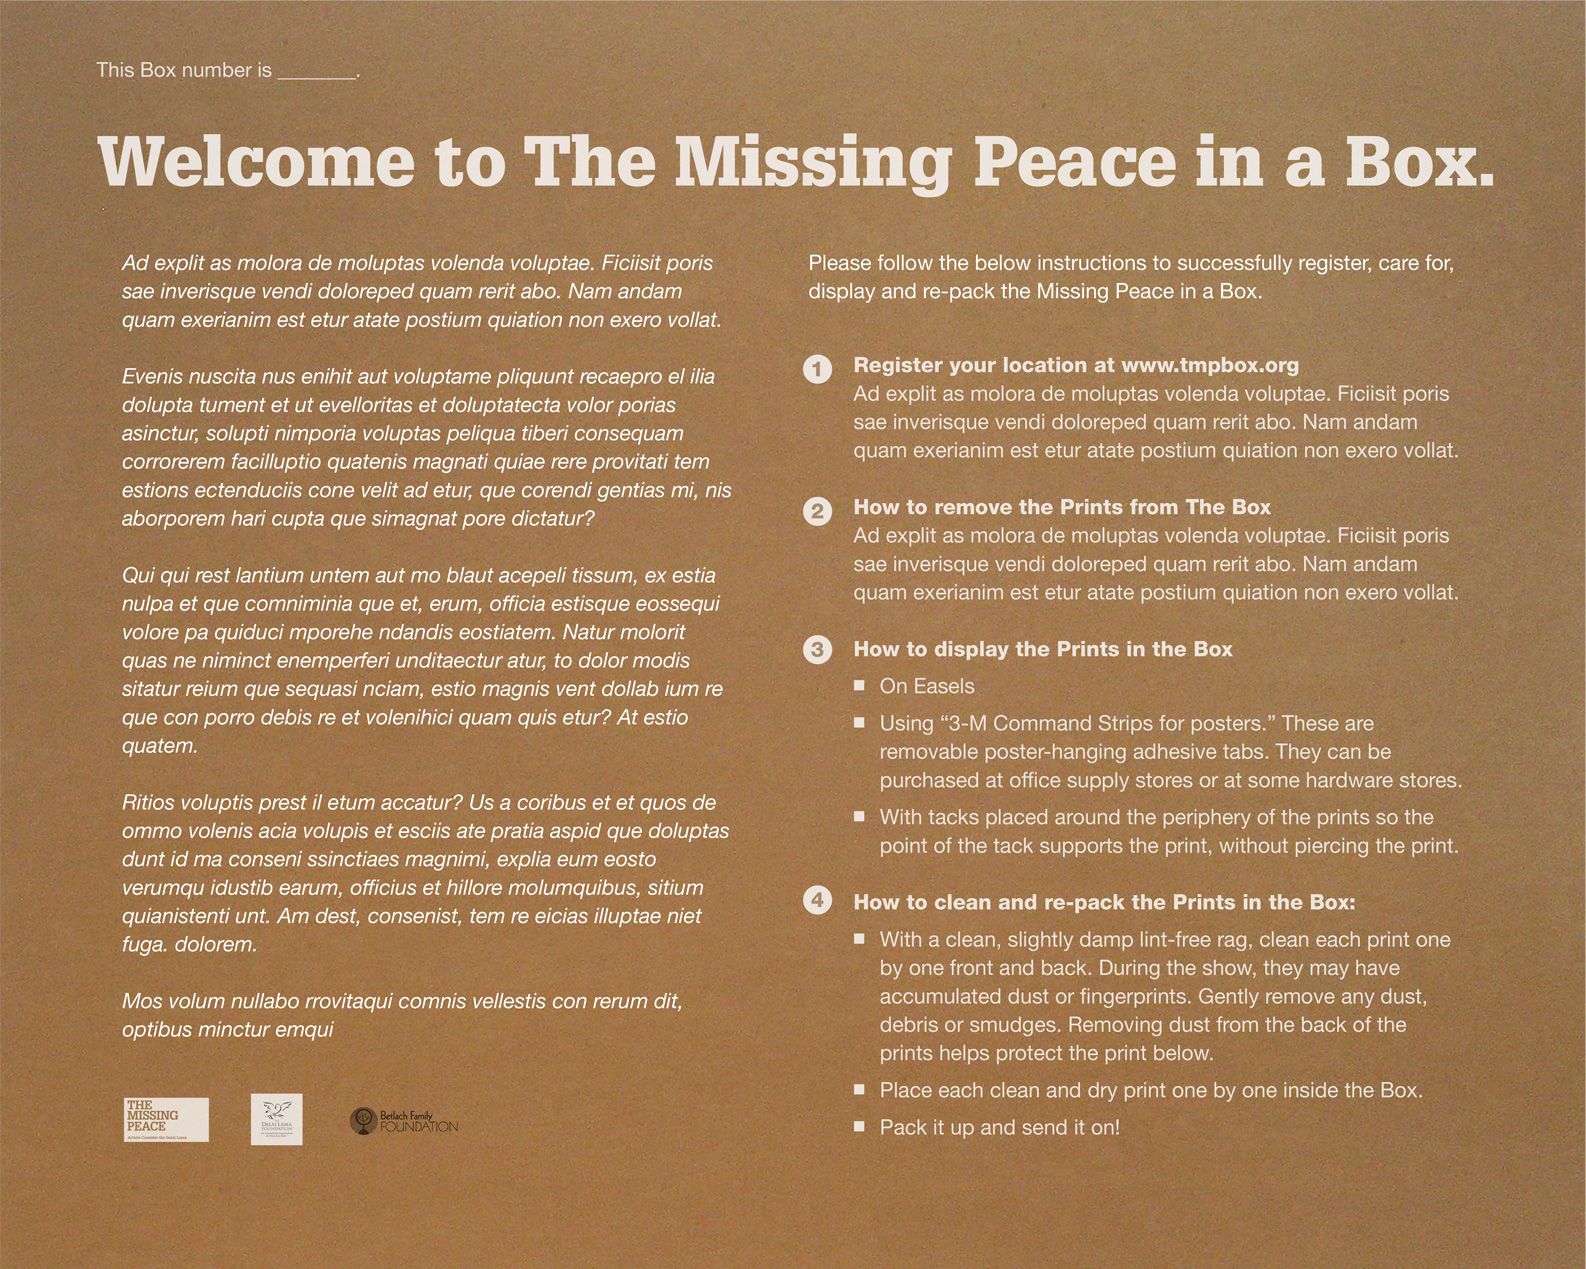 The Missing Peace (in a box) - Inside Box